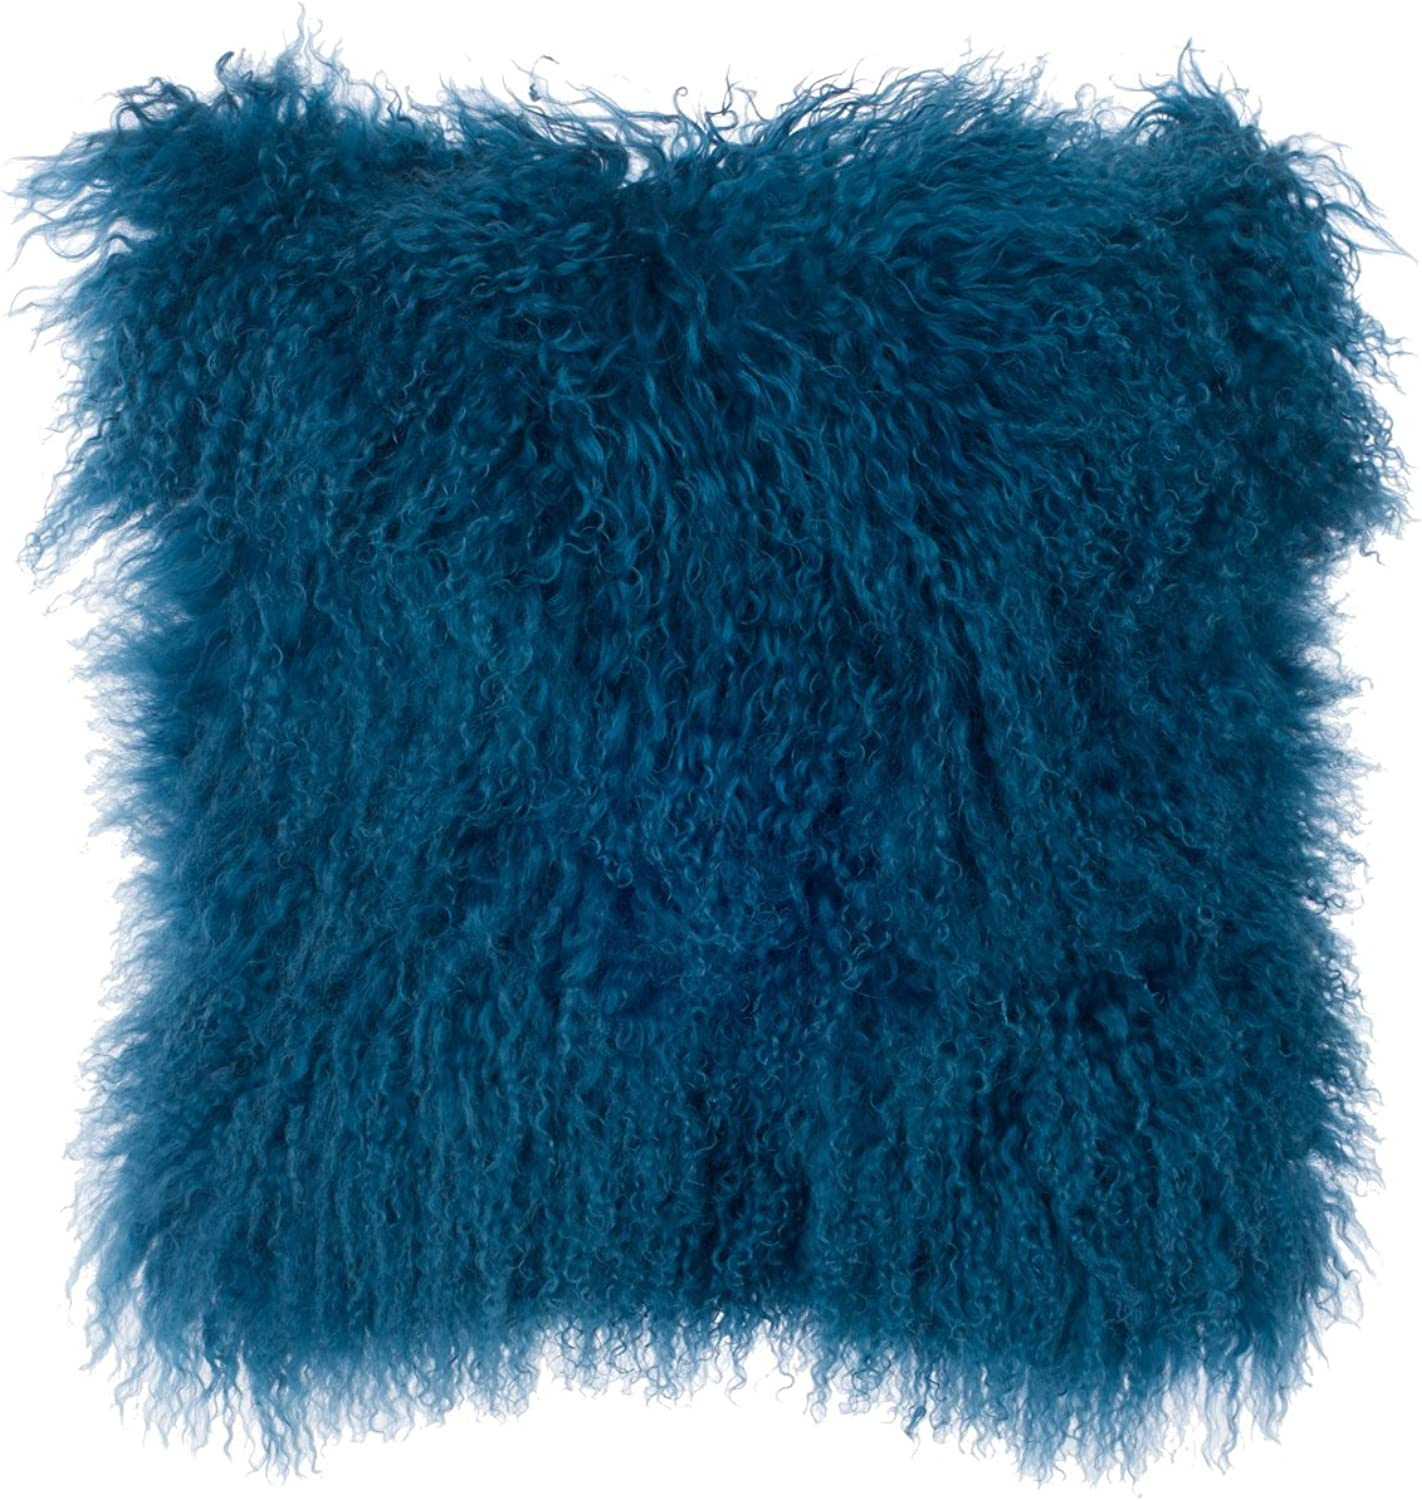 SLPR Mongolian Lamb Fur Throw Pillow Cover (24'' x 24'', Nordic bluee)   Real Fur Decorative Cushion Cover Pillow Case for Living Room Bedroom